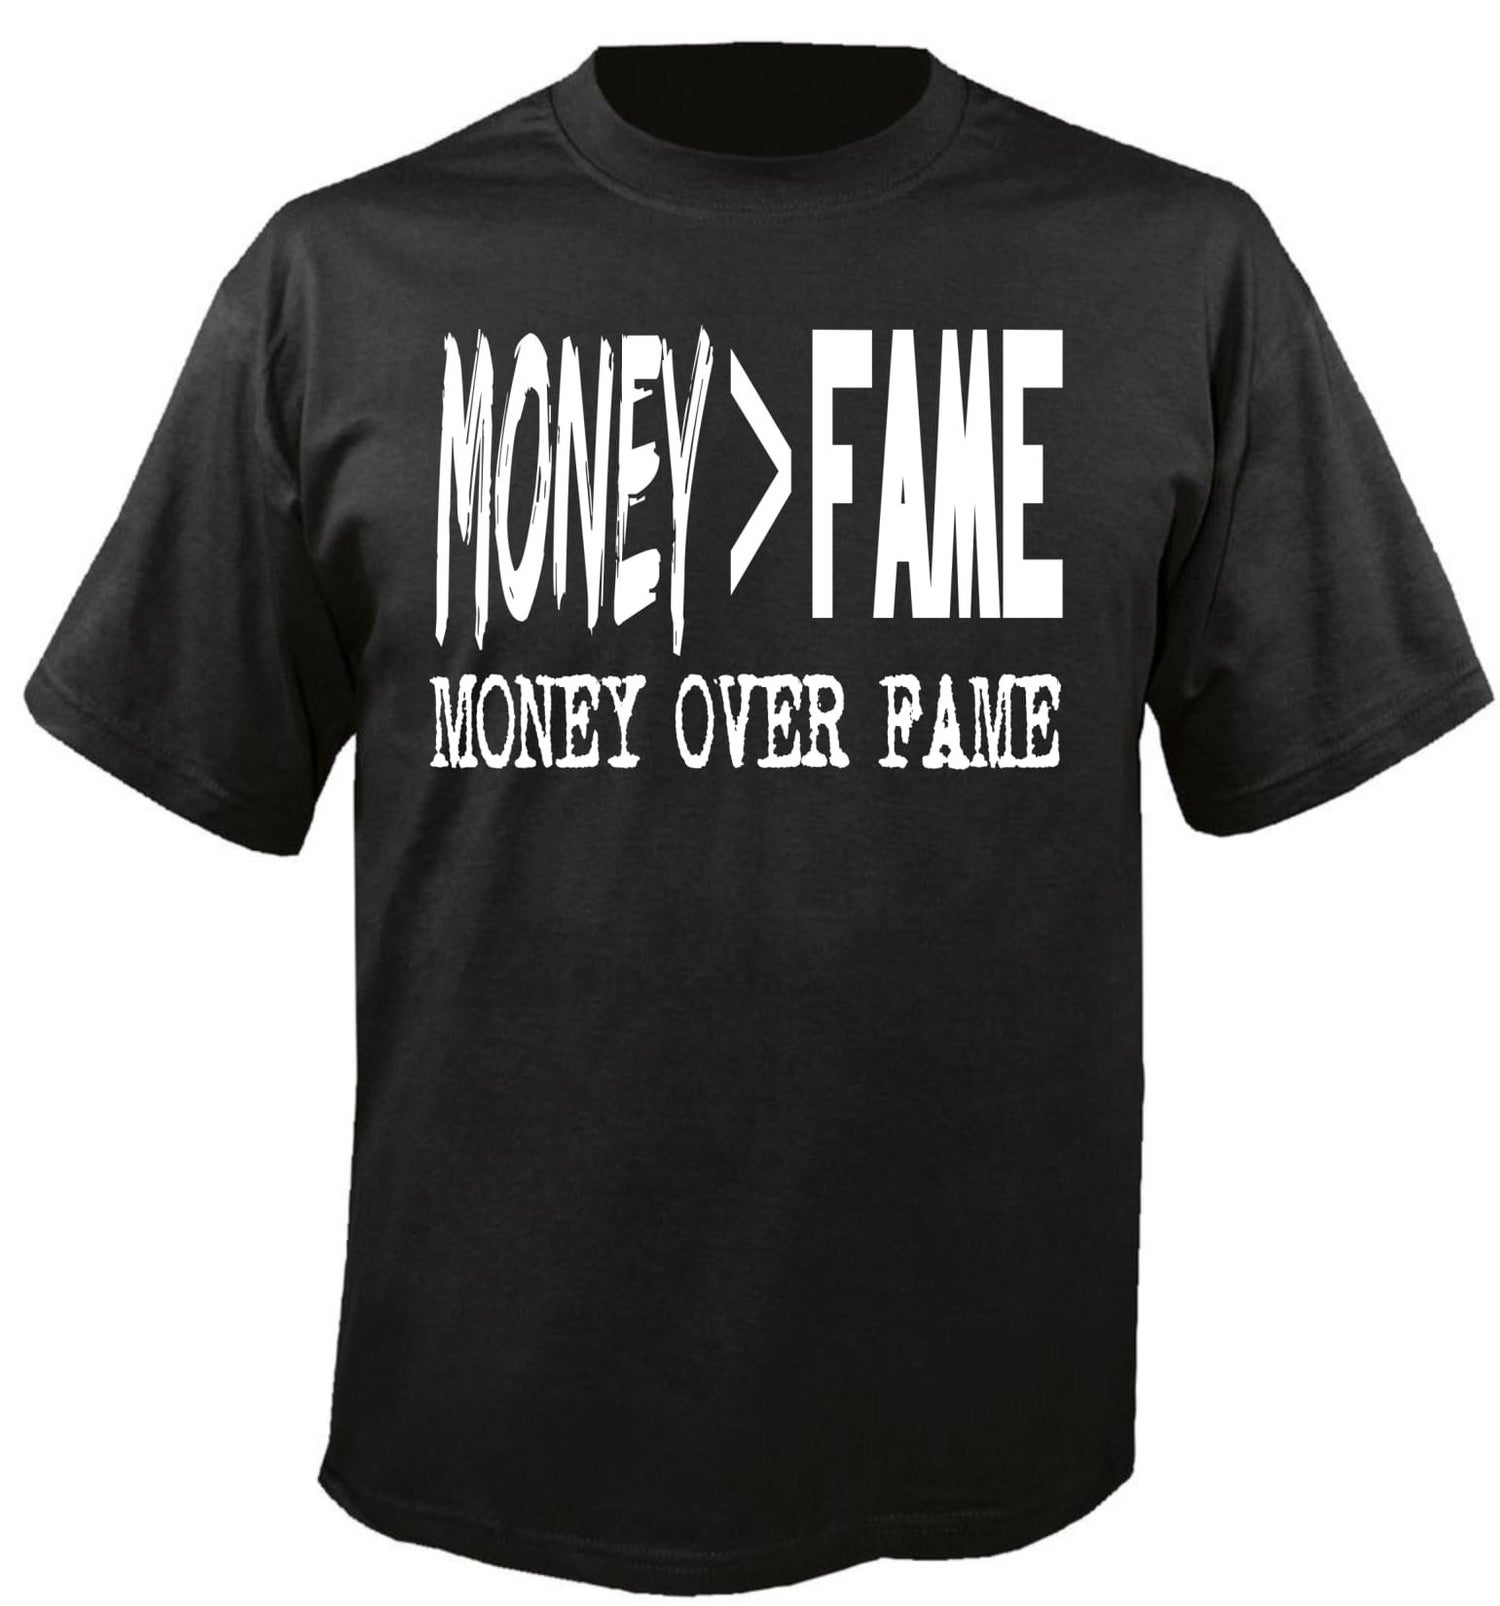 Image of Money Over Fame Tee